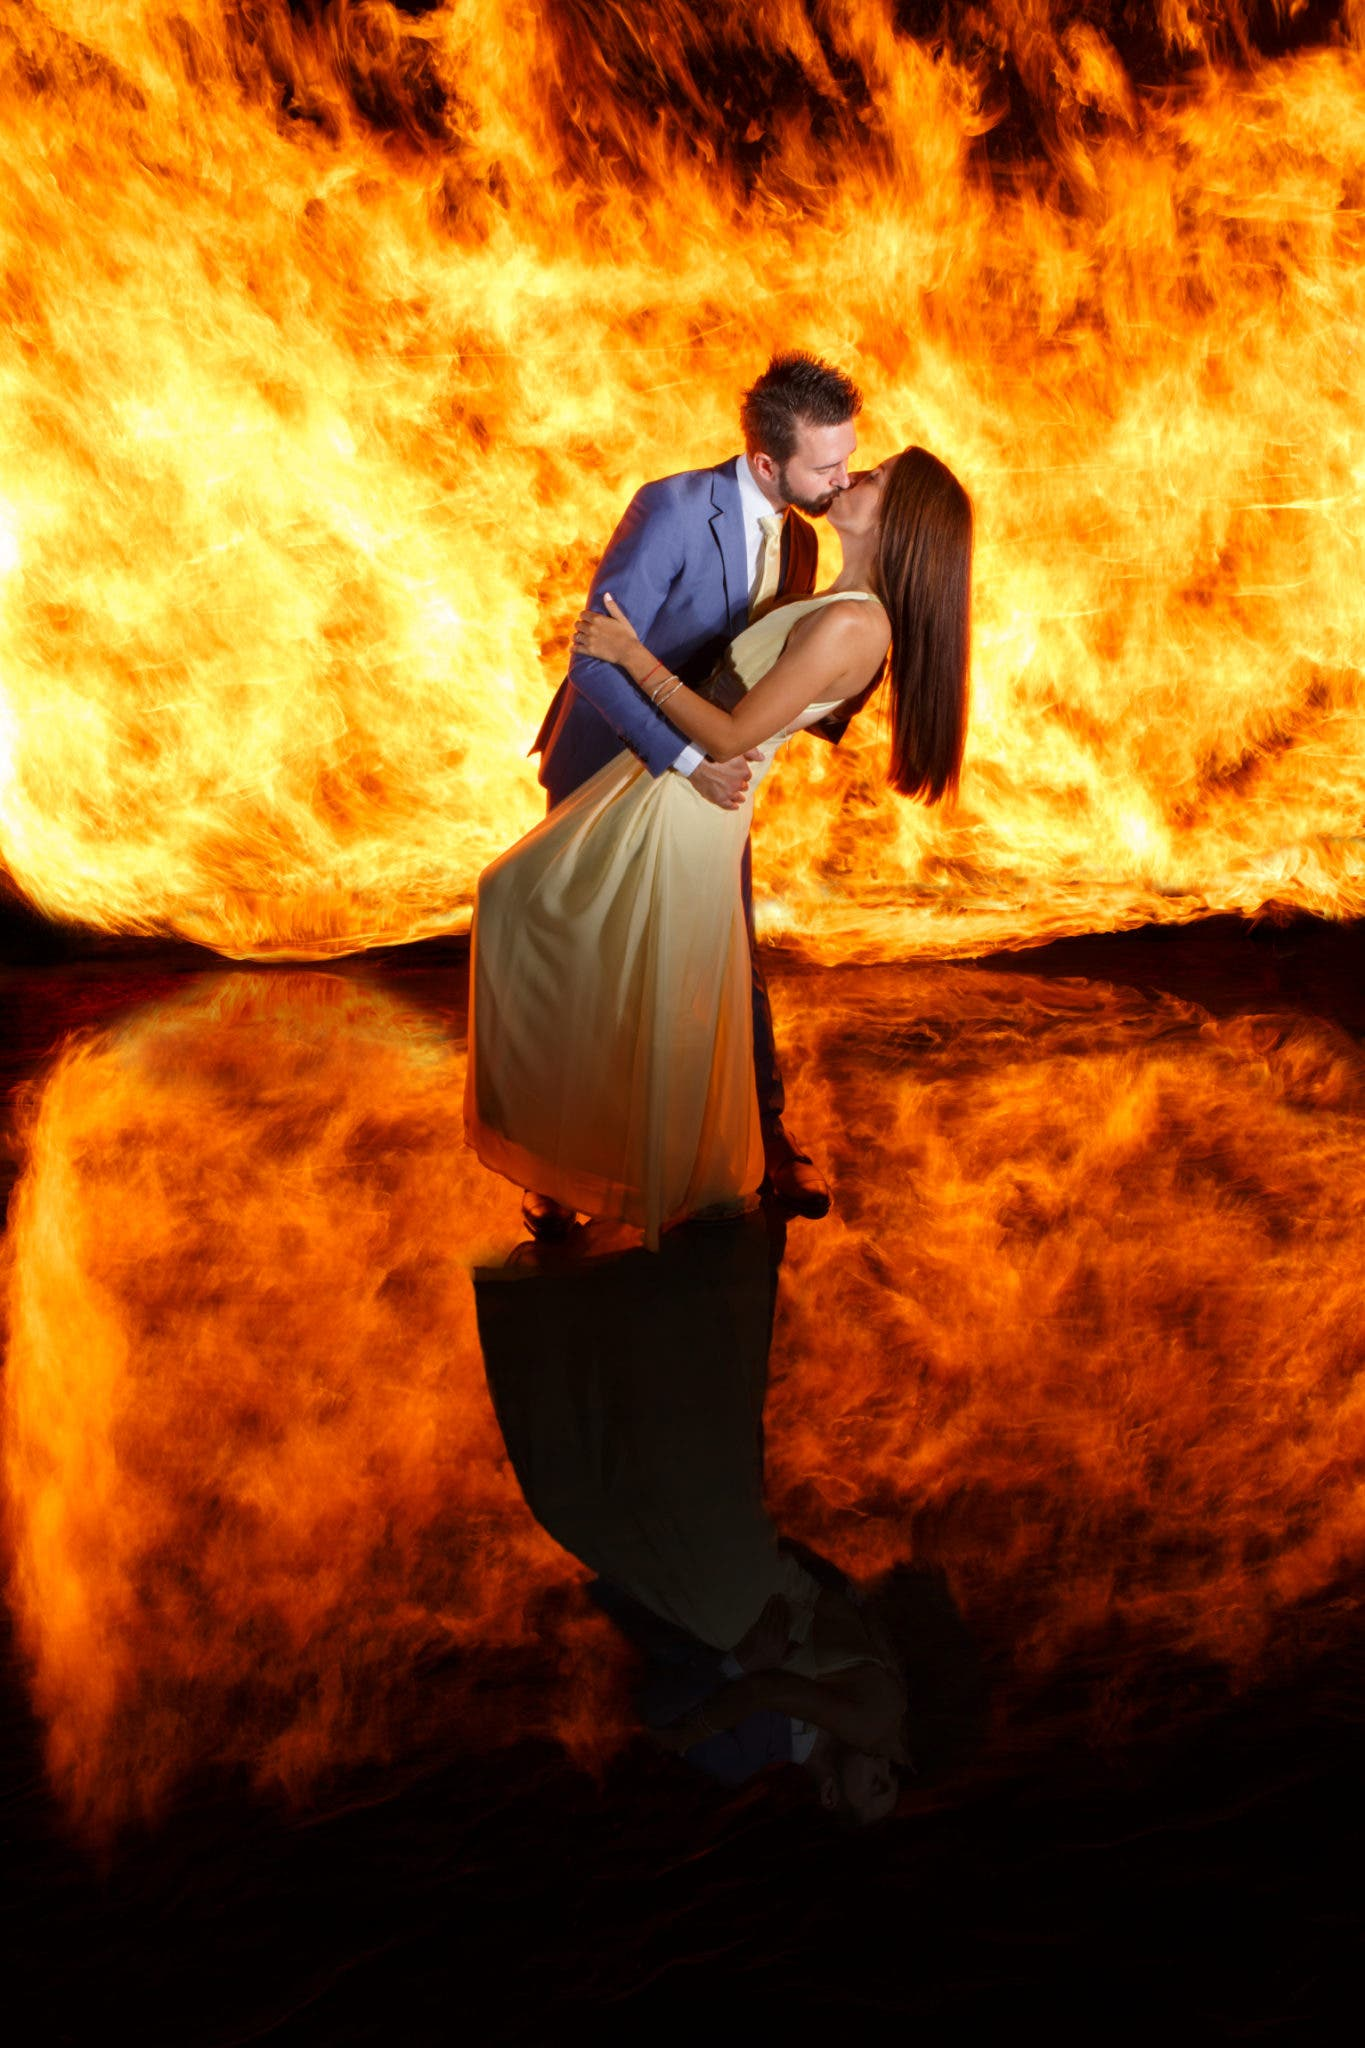 This Fiery Wedding Photo is a Single Exposure Done With Two Strobes